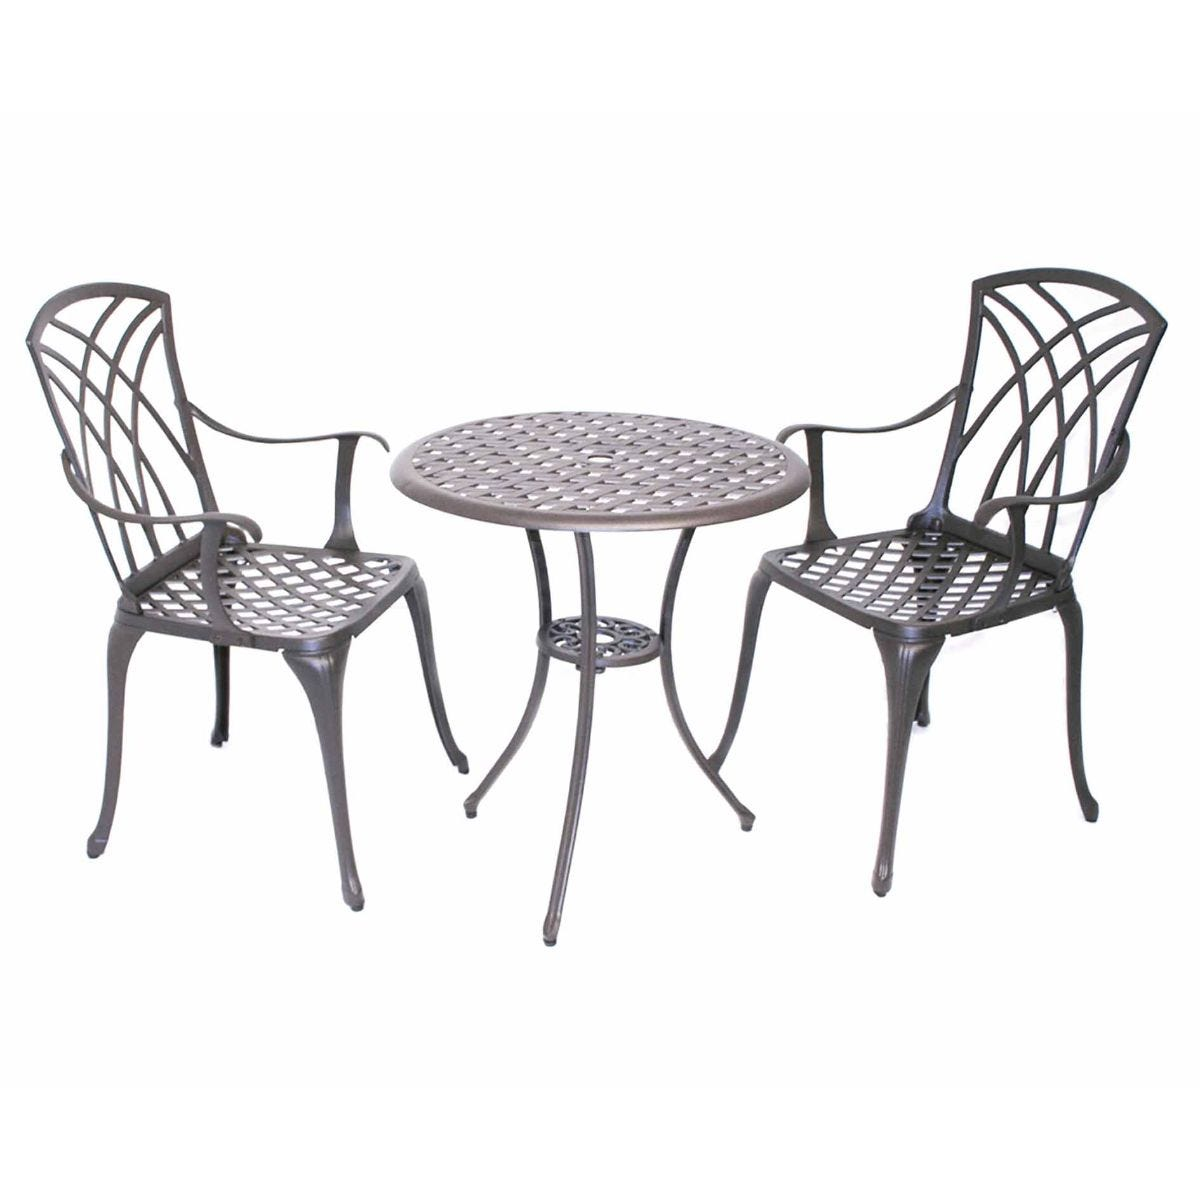 Charles Bentley Cast Aluminium Bistro Table and 2 Armchairs Set with Cushions, Black